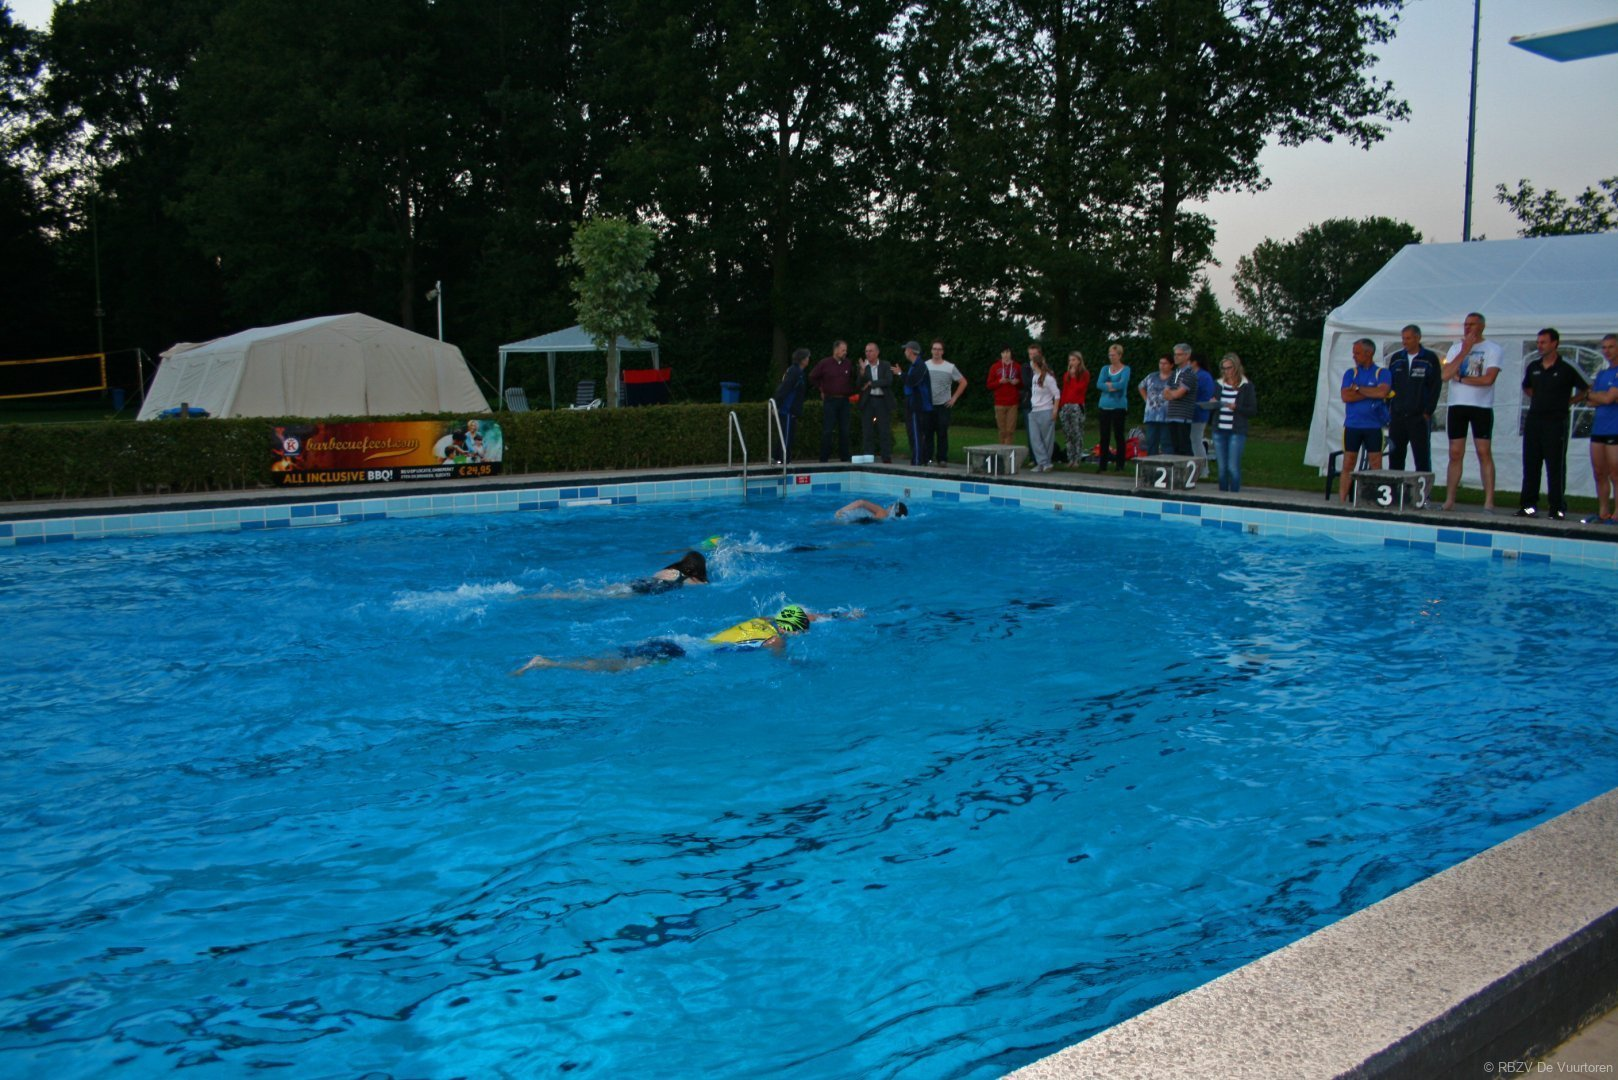 MidSummer NightSwim 2014